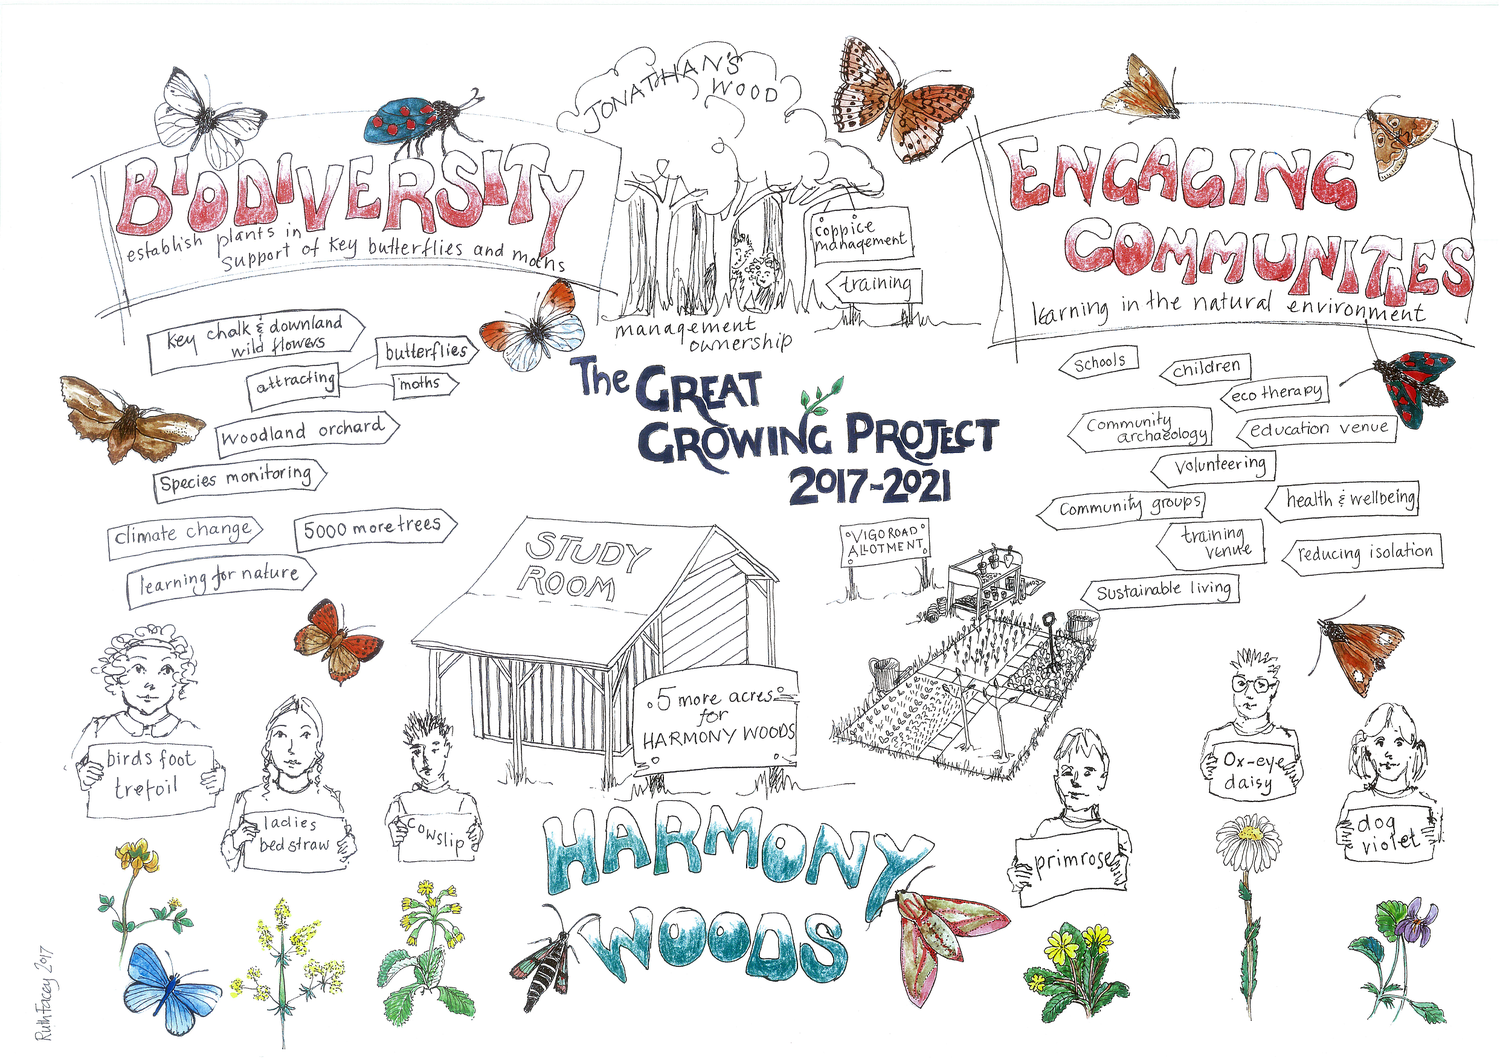 Illustrated Vision  Elements of the Great Growing Project  Press the image to enlarge.